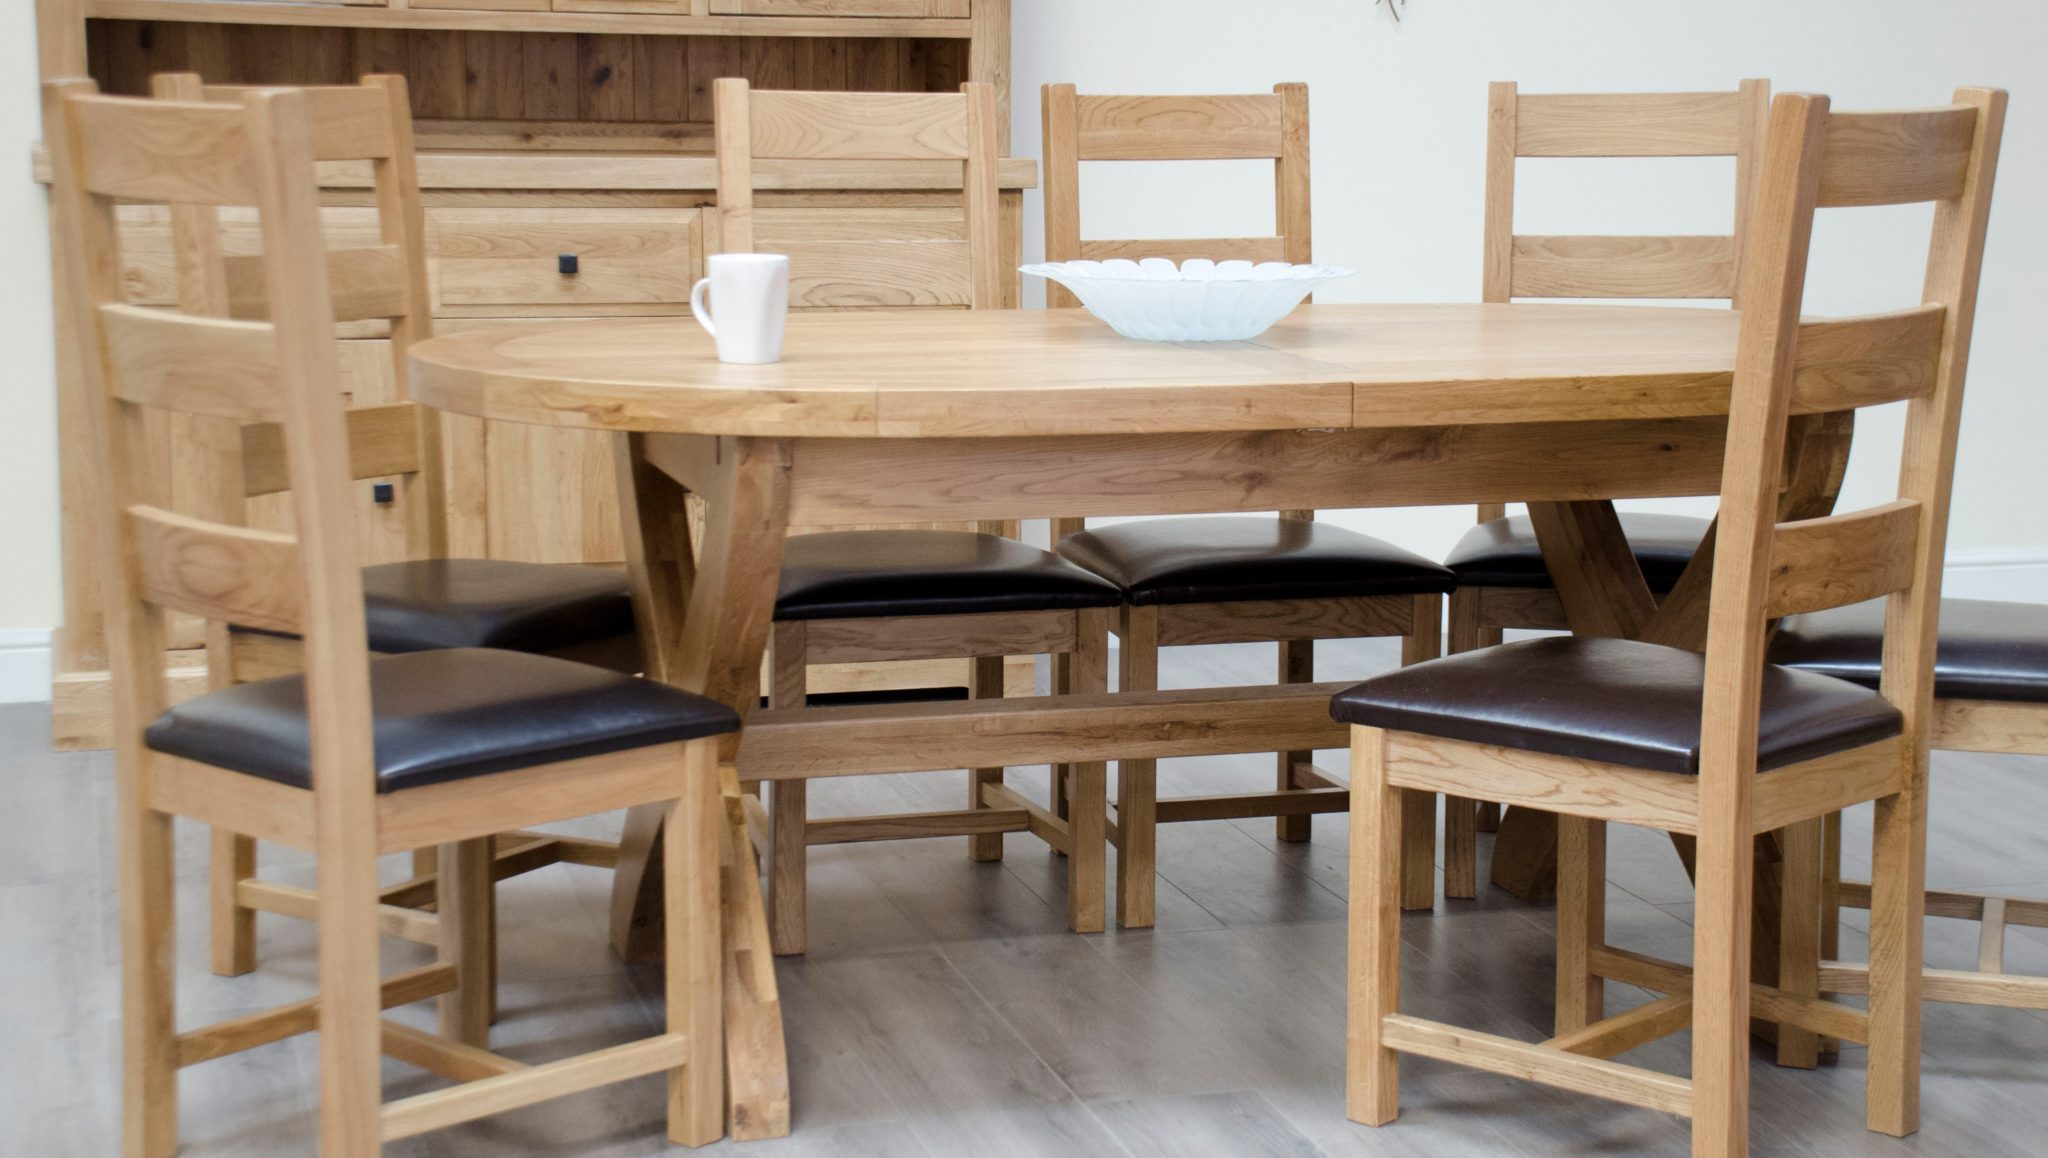 Melford solid oak oval cross leg table